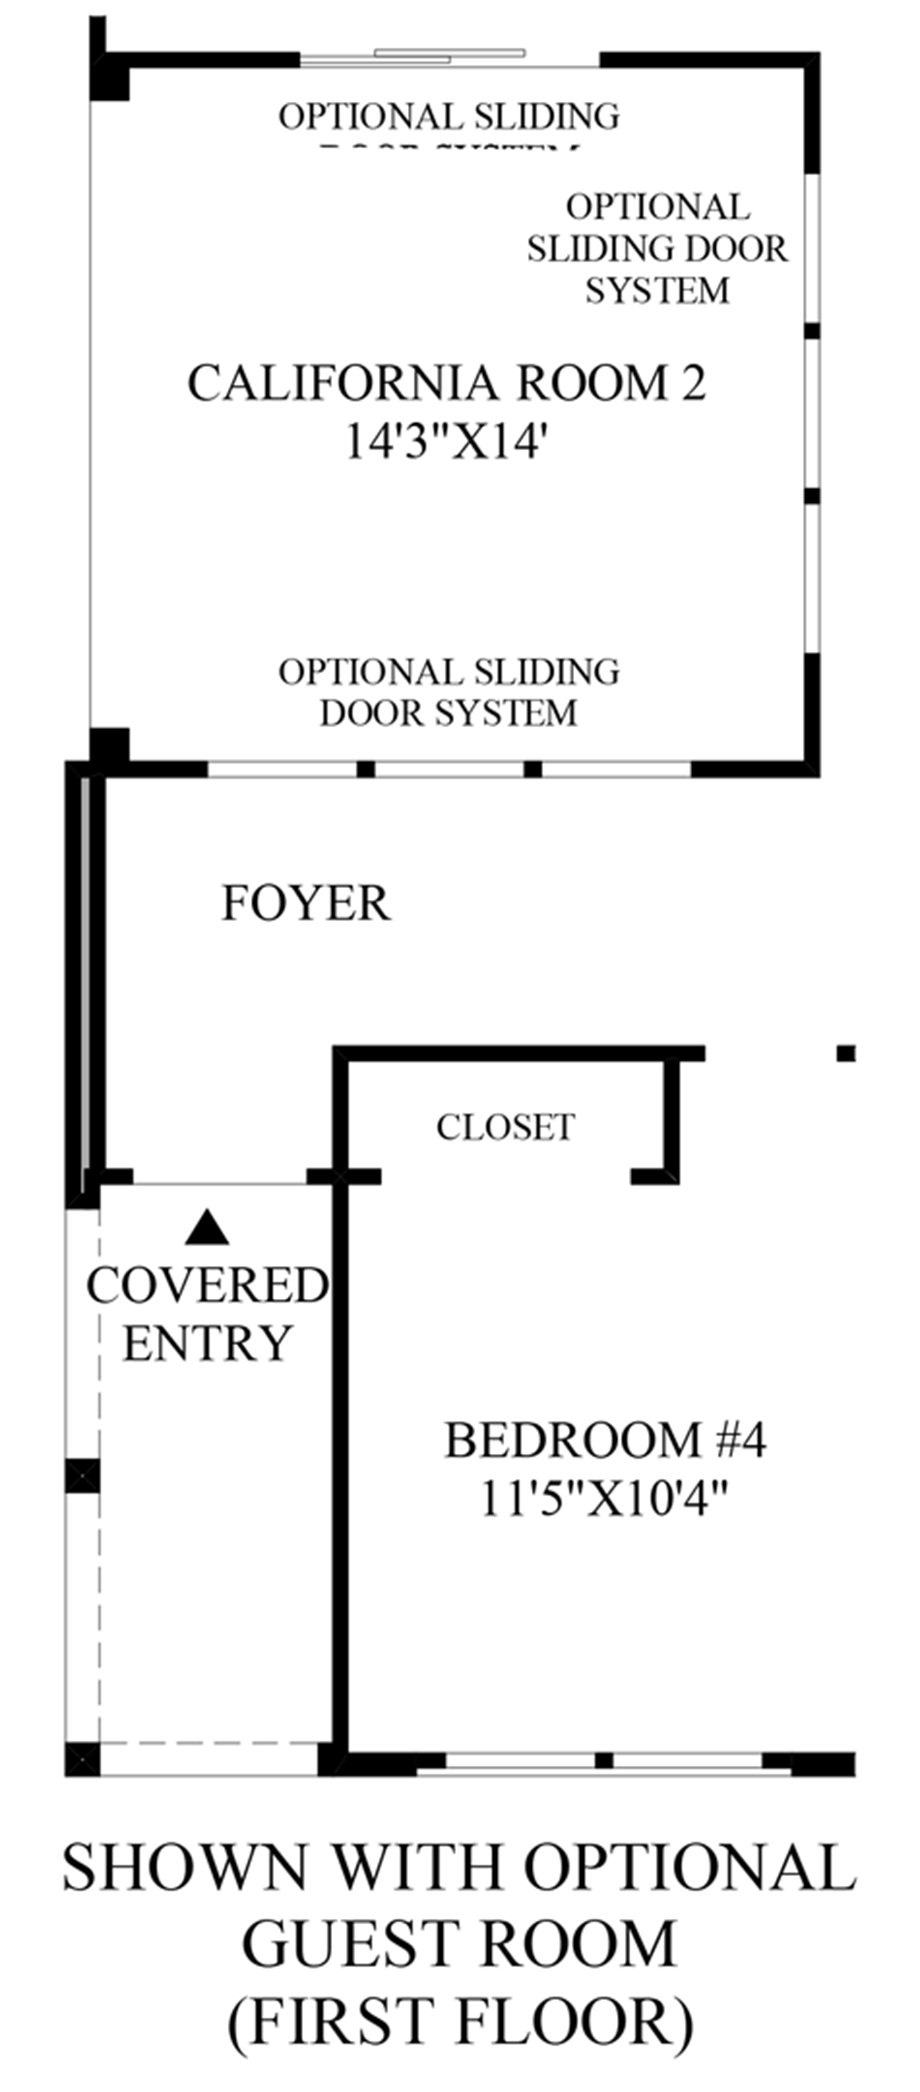 Optional Guest Room (First Floor) Floor Plan